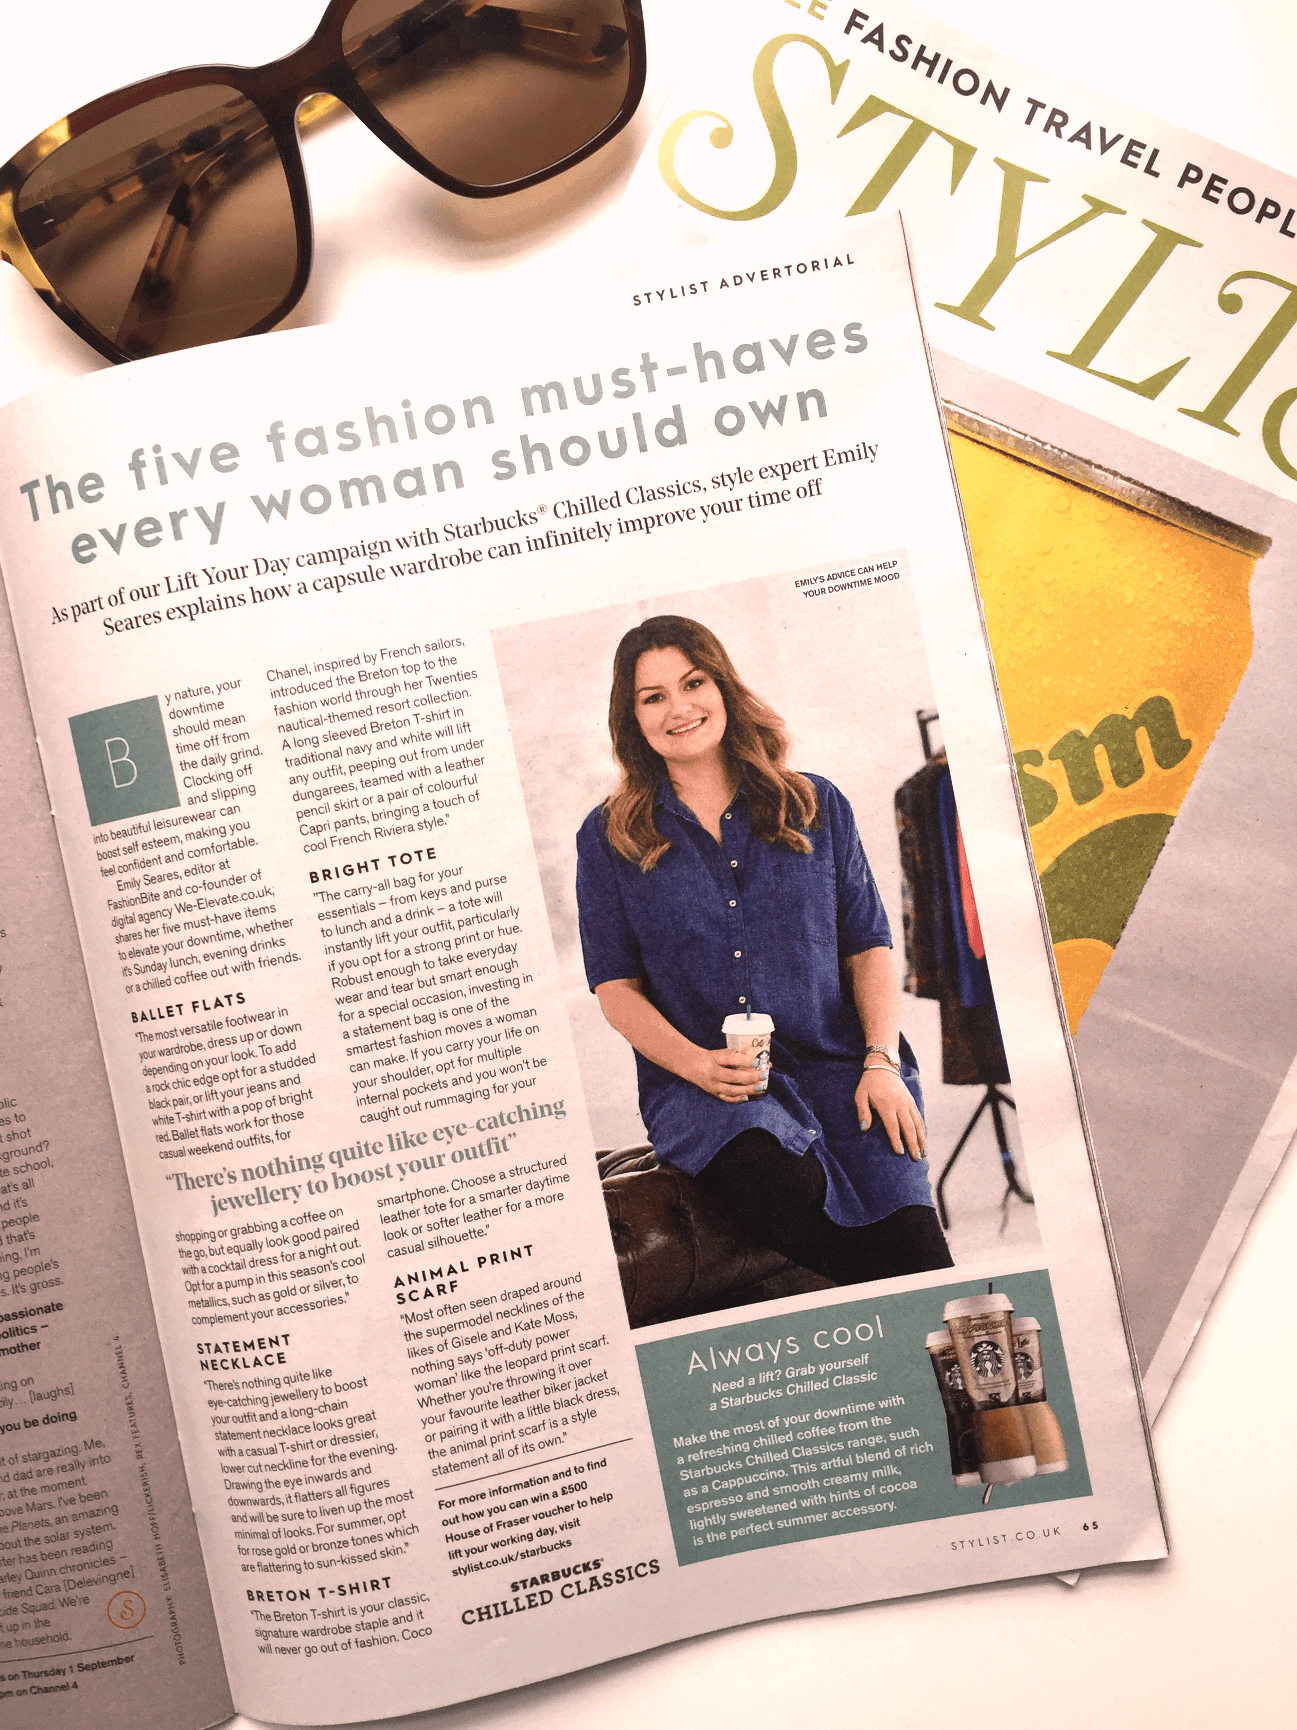 FashionBite editor Emily Seares in Stylist magazine